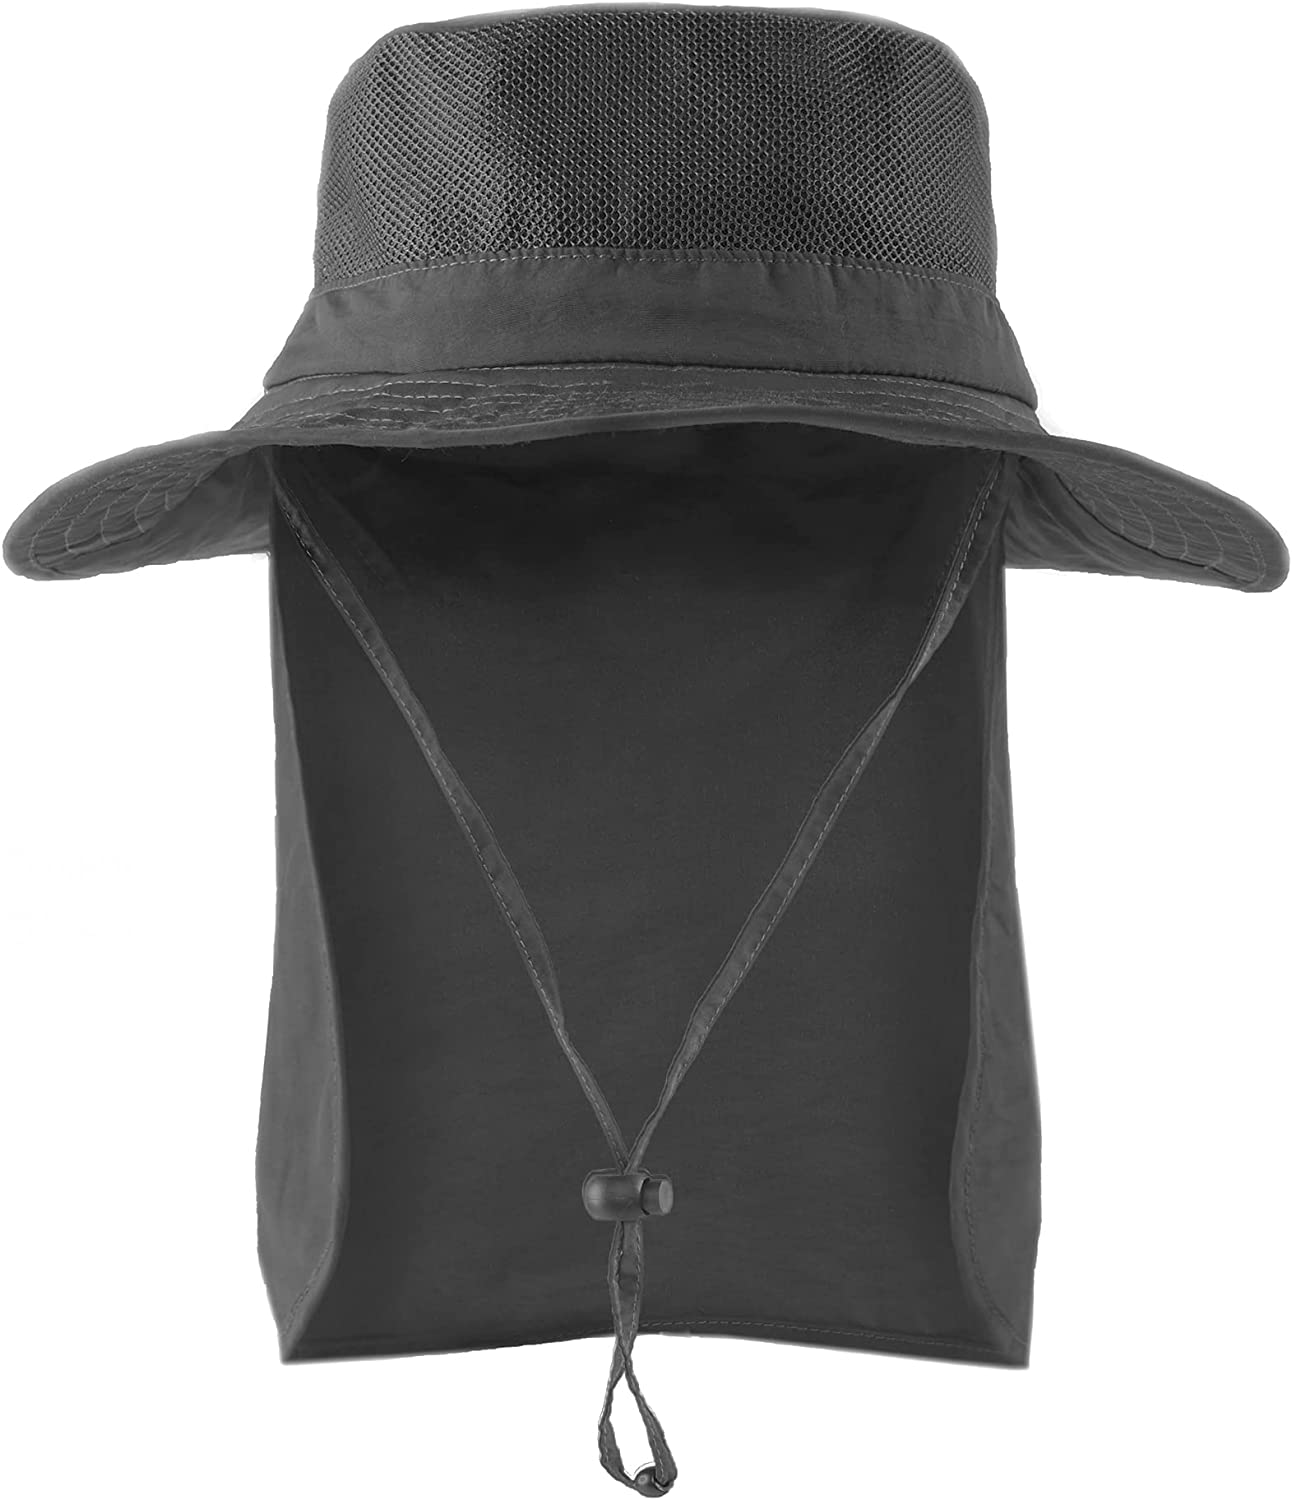 Camptrace Sun Hat for Men Women Wide Brim Fishing Hiking Hat Sun Protection Bucket Hat with Neck Flap UPF 50+